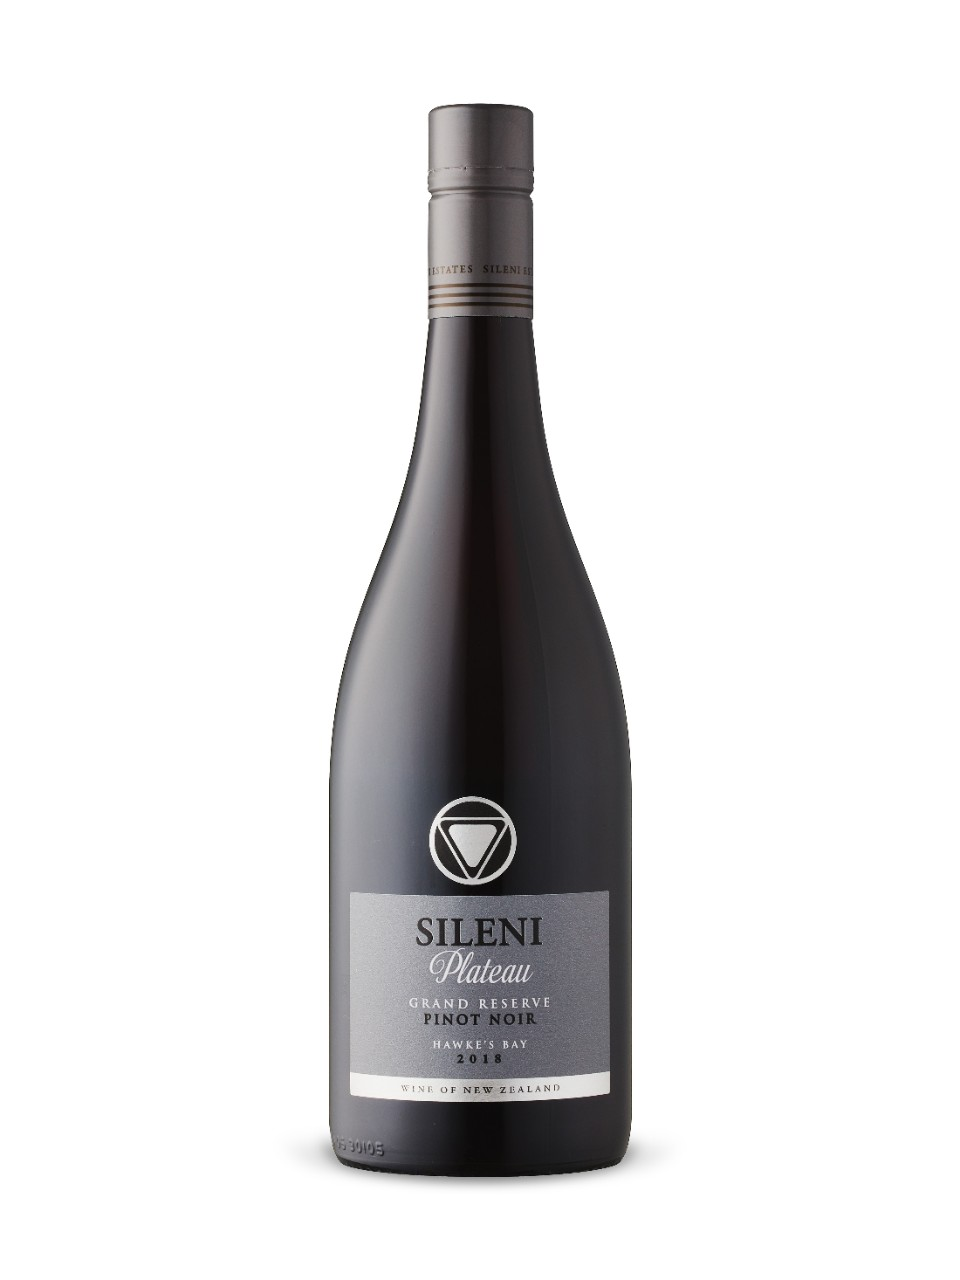 Sileni Plateau Grand Reserve Pinot Noir 2018 from LCBO